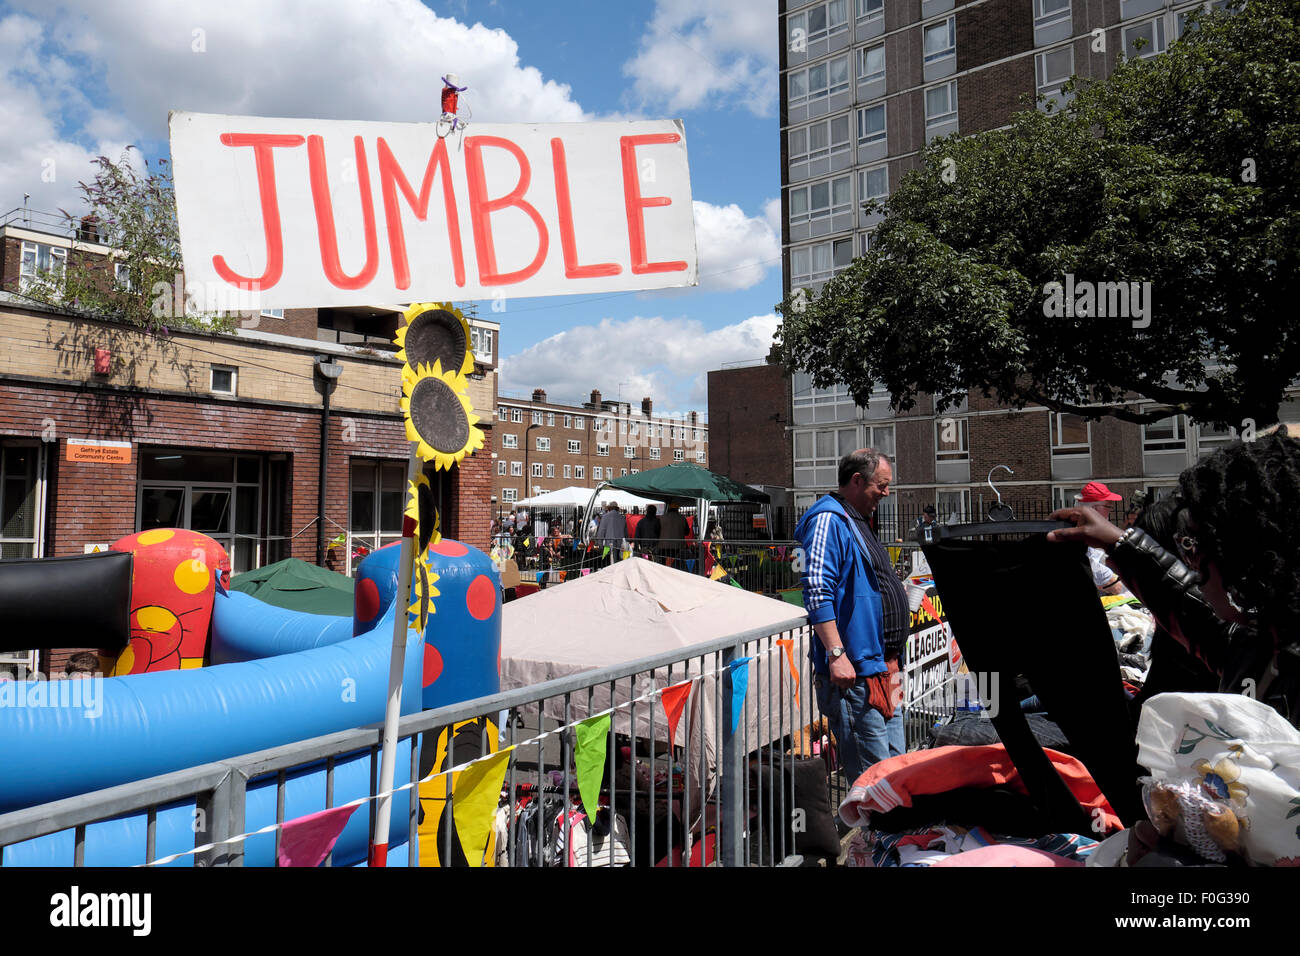 A Jumble sign at a jumble sale outside  Geffrye Community Centre in Hoxton, East London UK  KATHY DEWITT - Stock Image